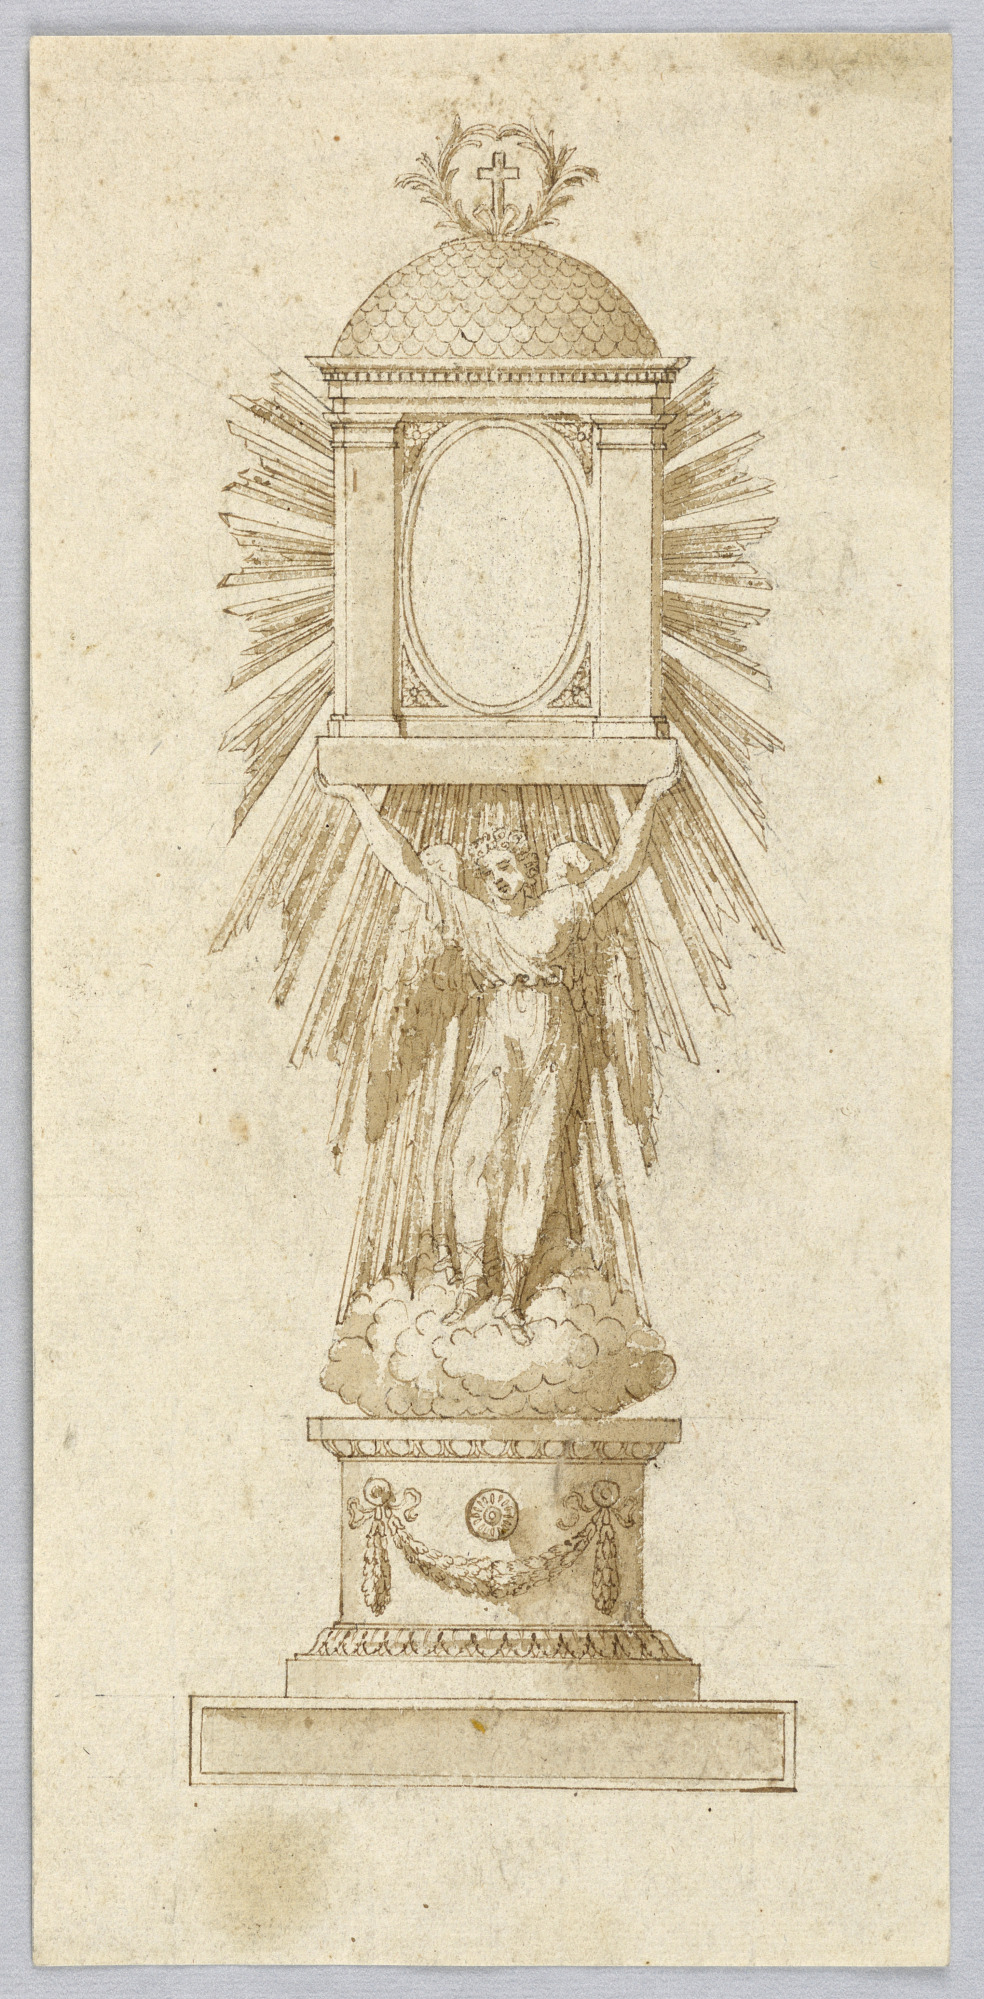 Elevation of a Monstrance